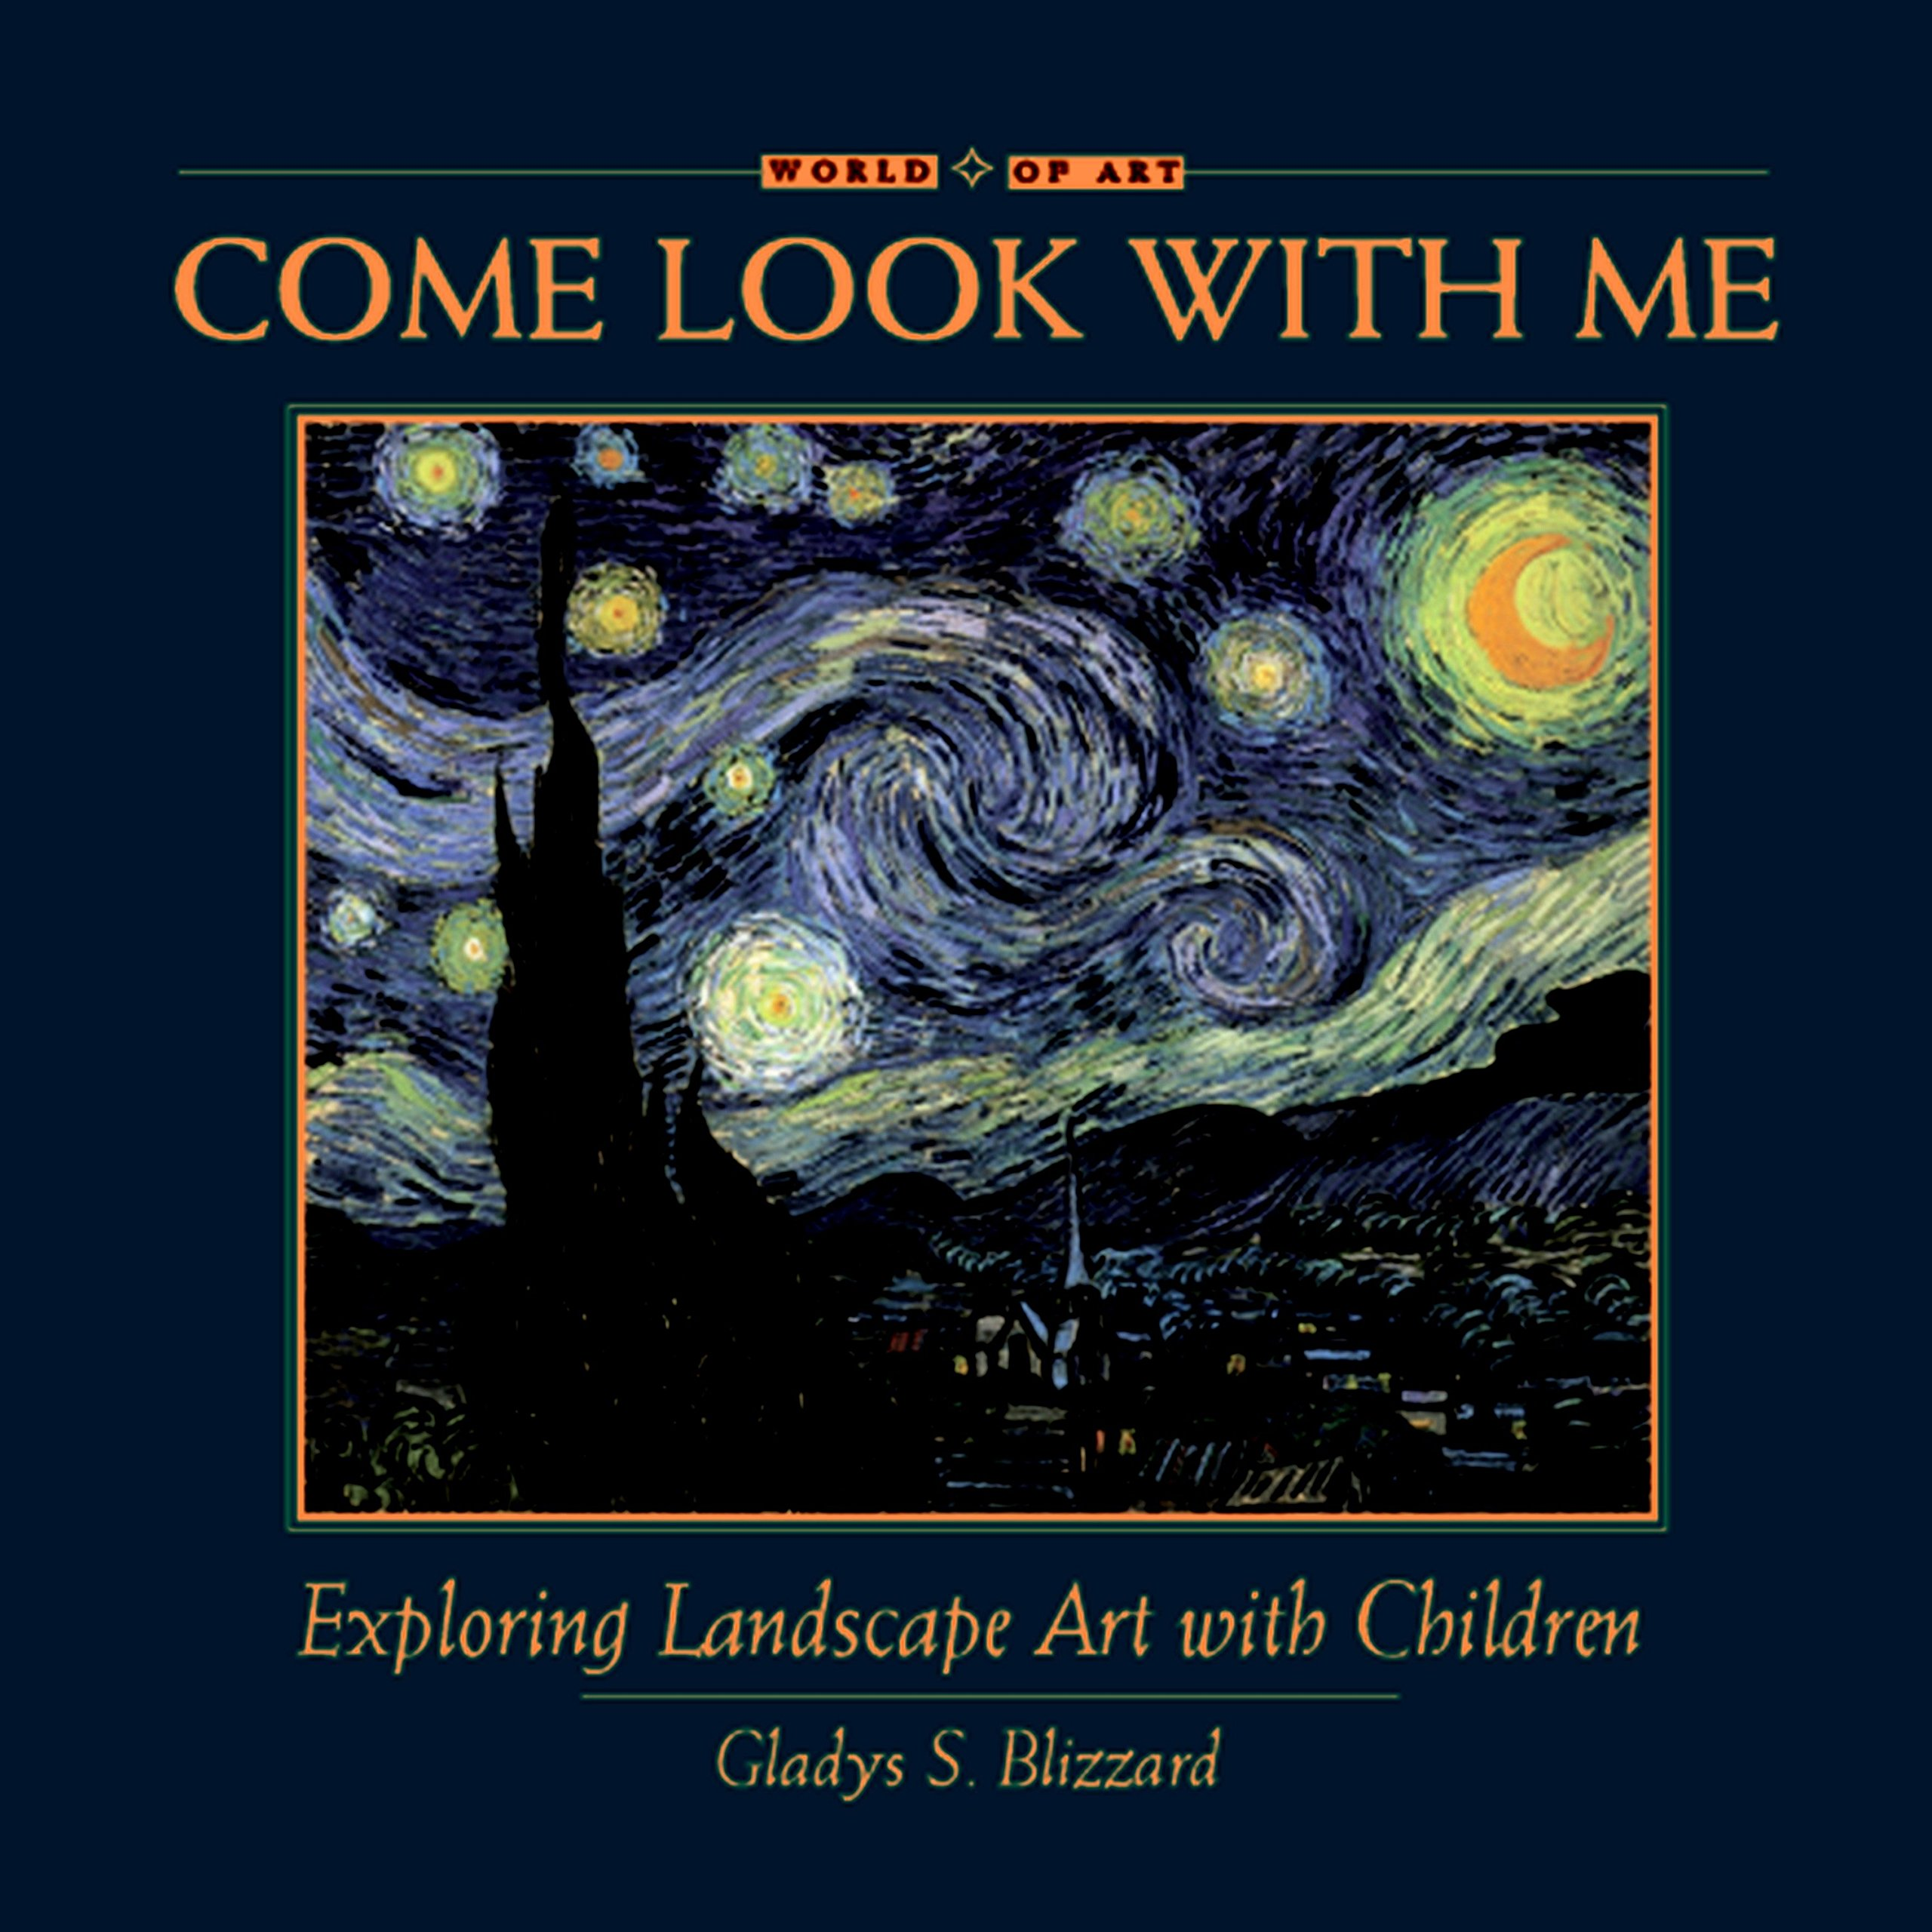 Exploring Landscape Art with Children (Come Look With Me)